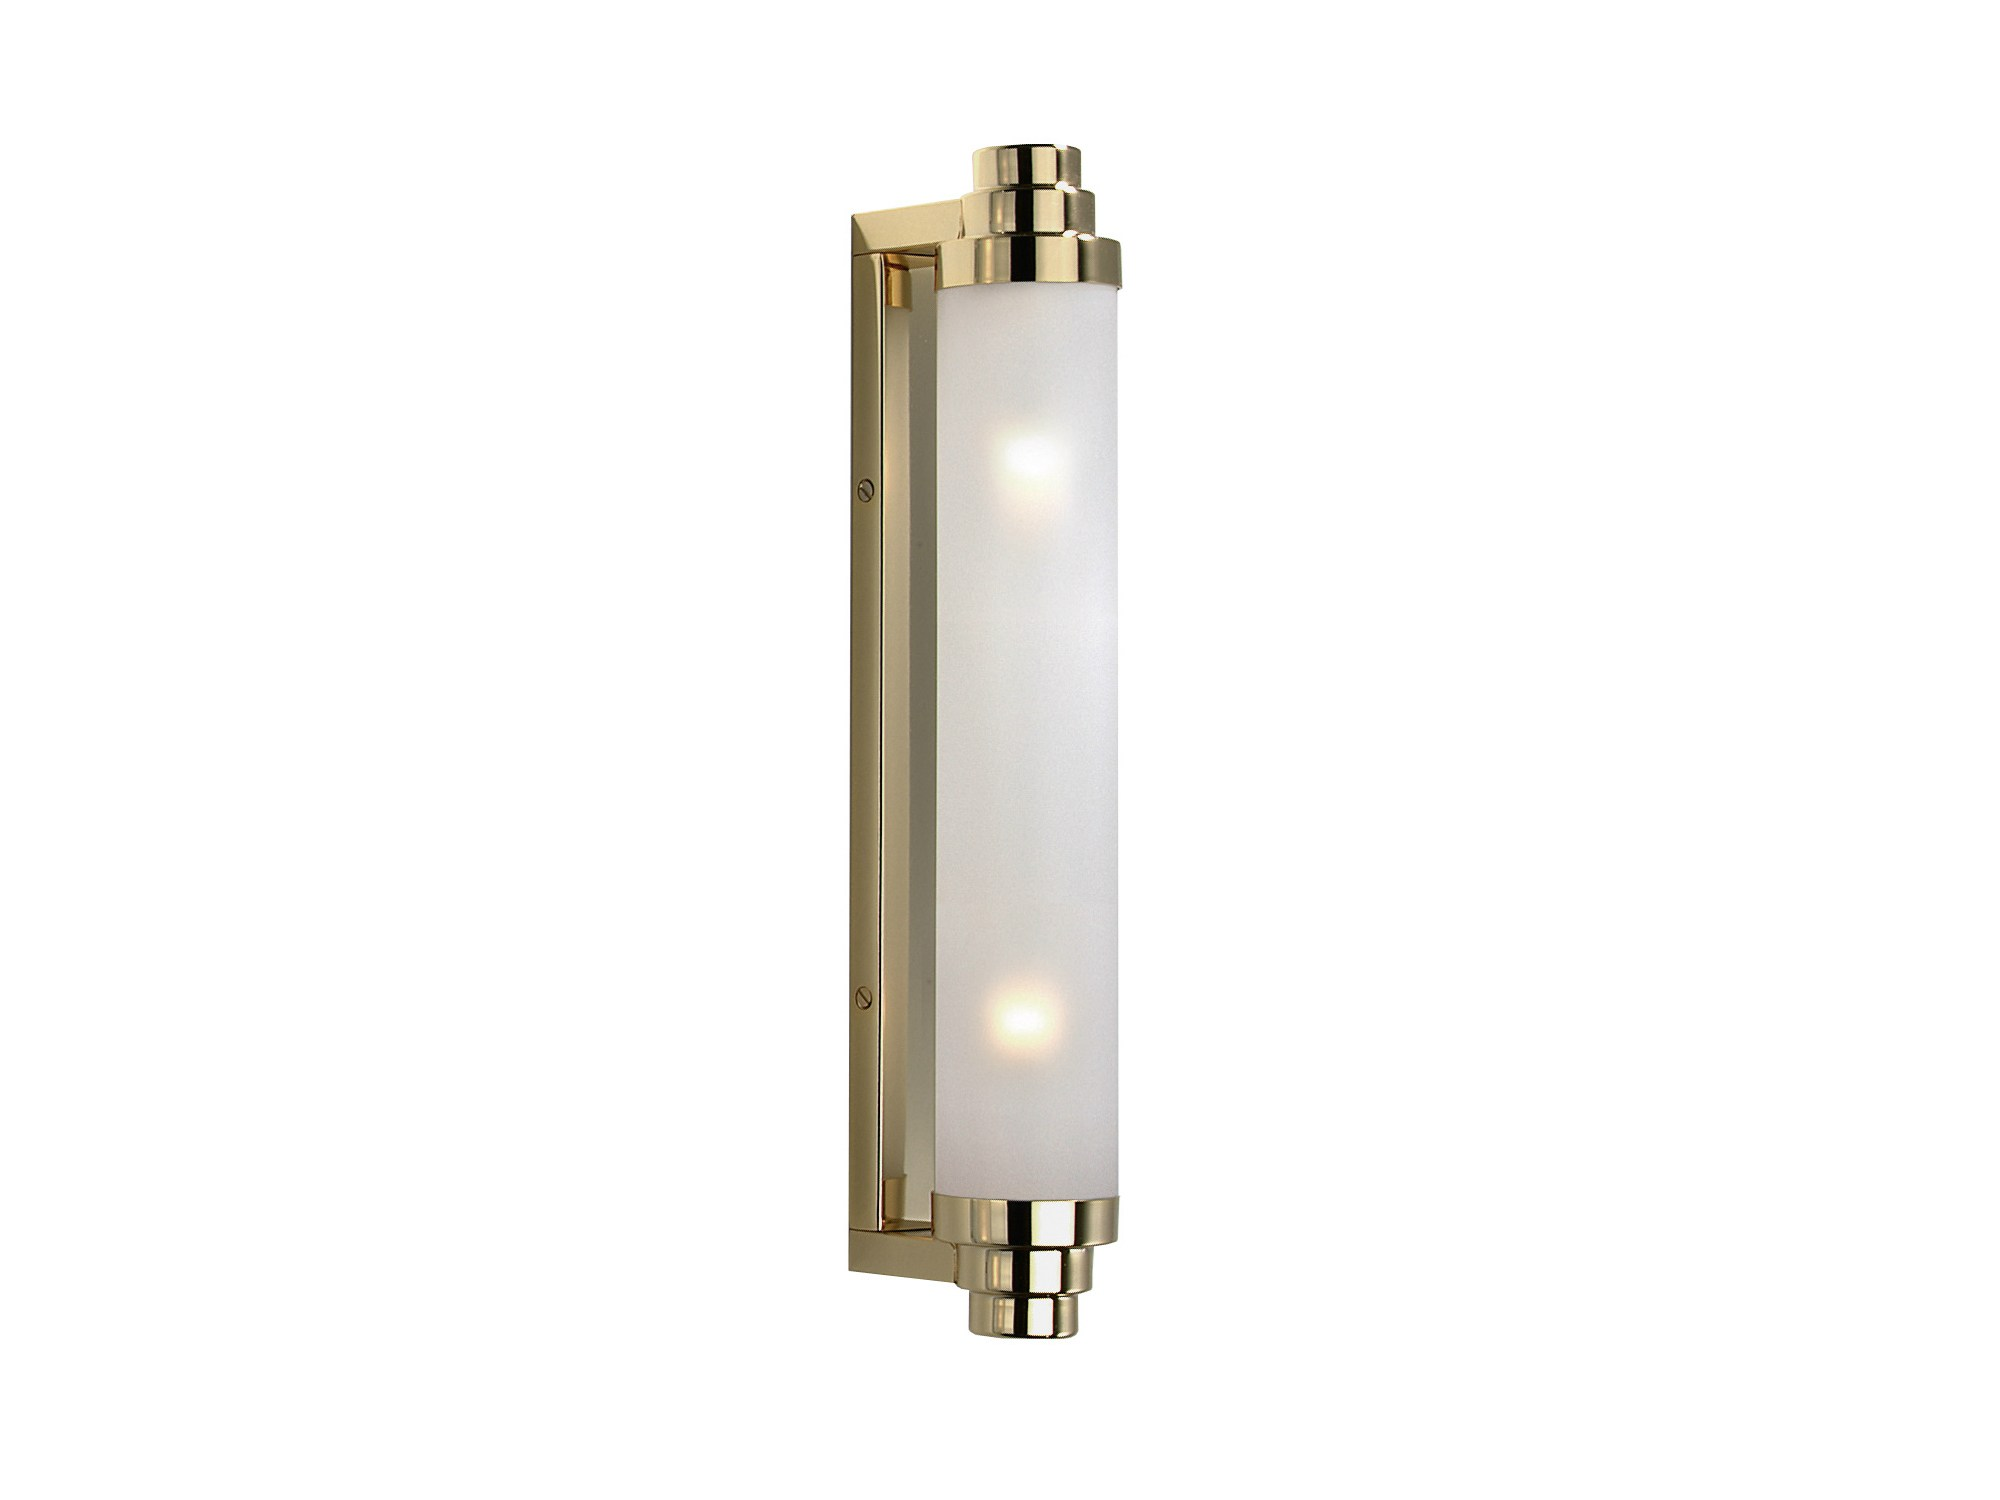 Decor Walther Wall Lamp Vienna By Decor Walther